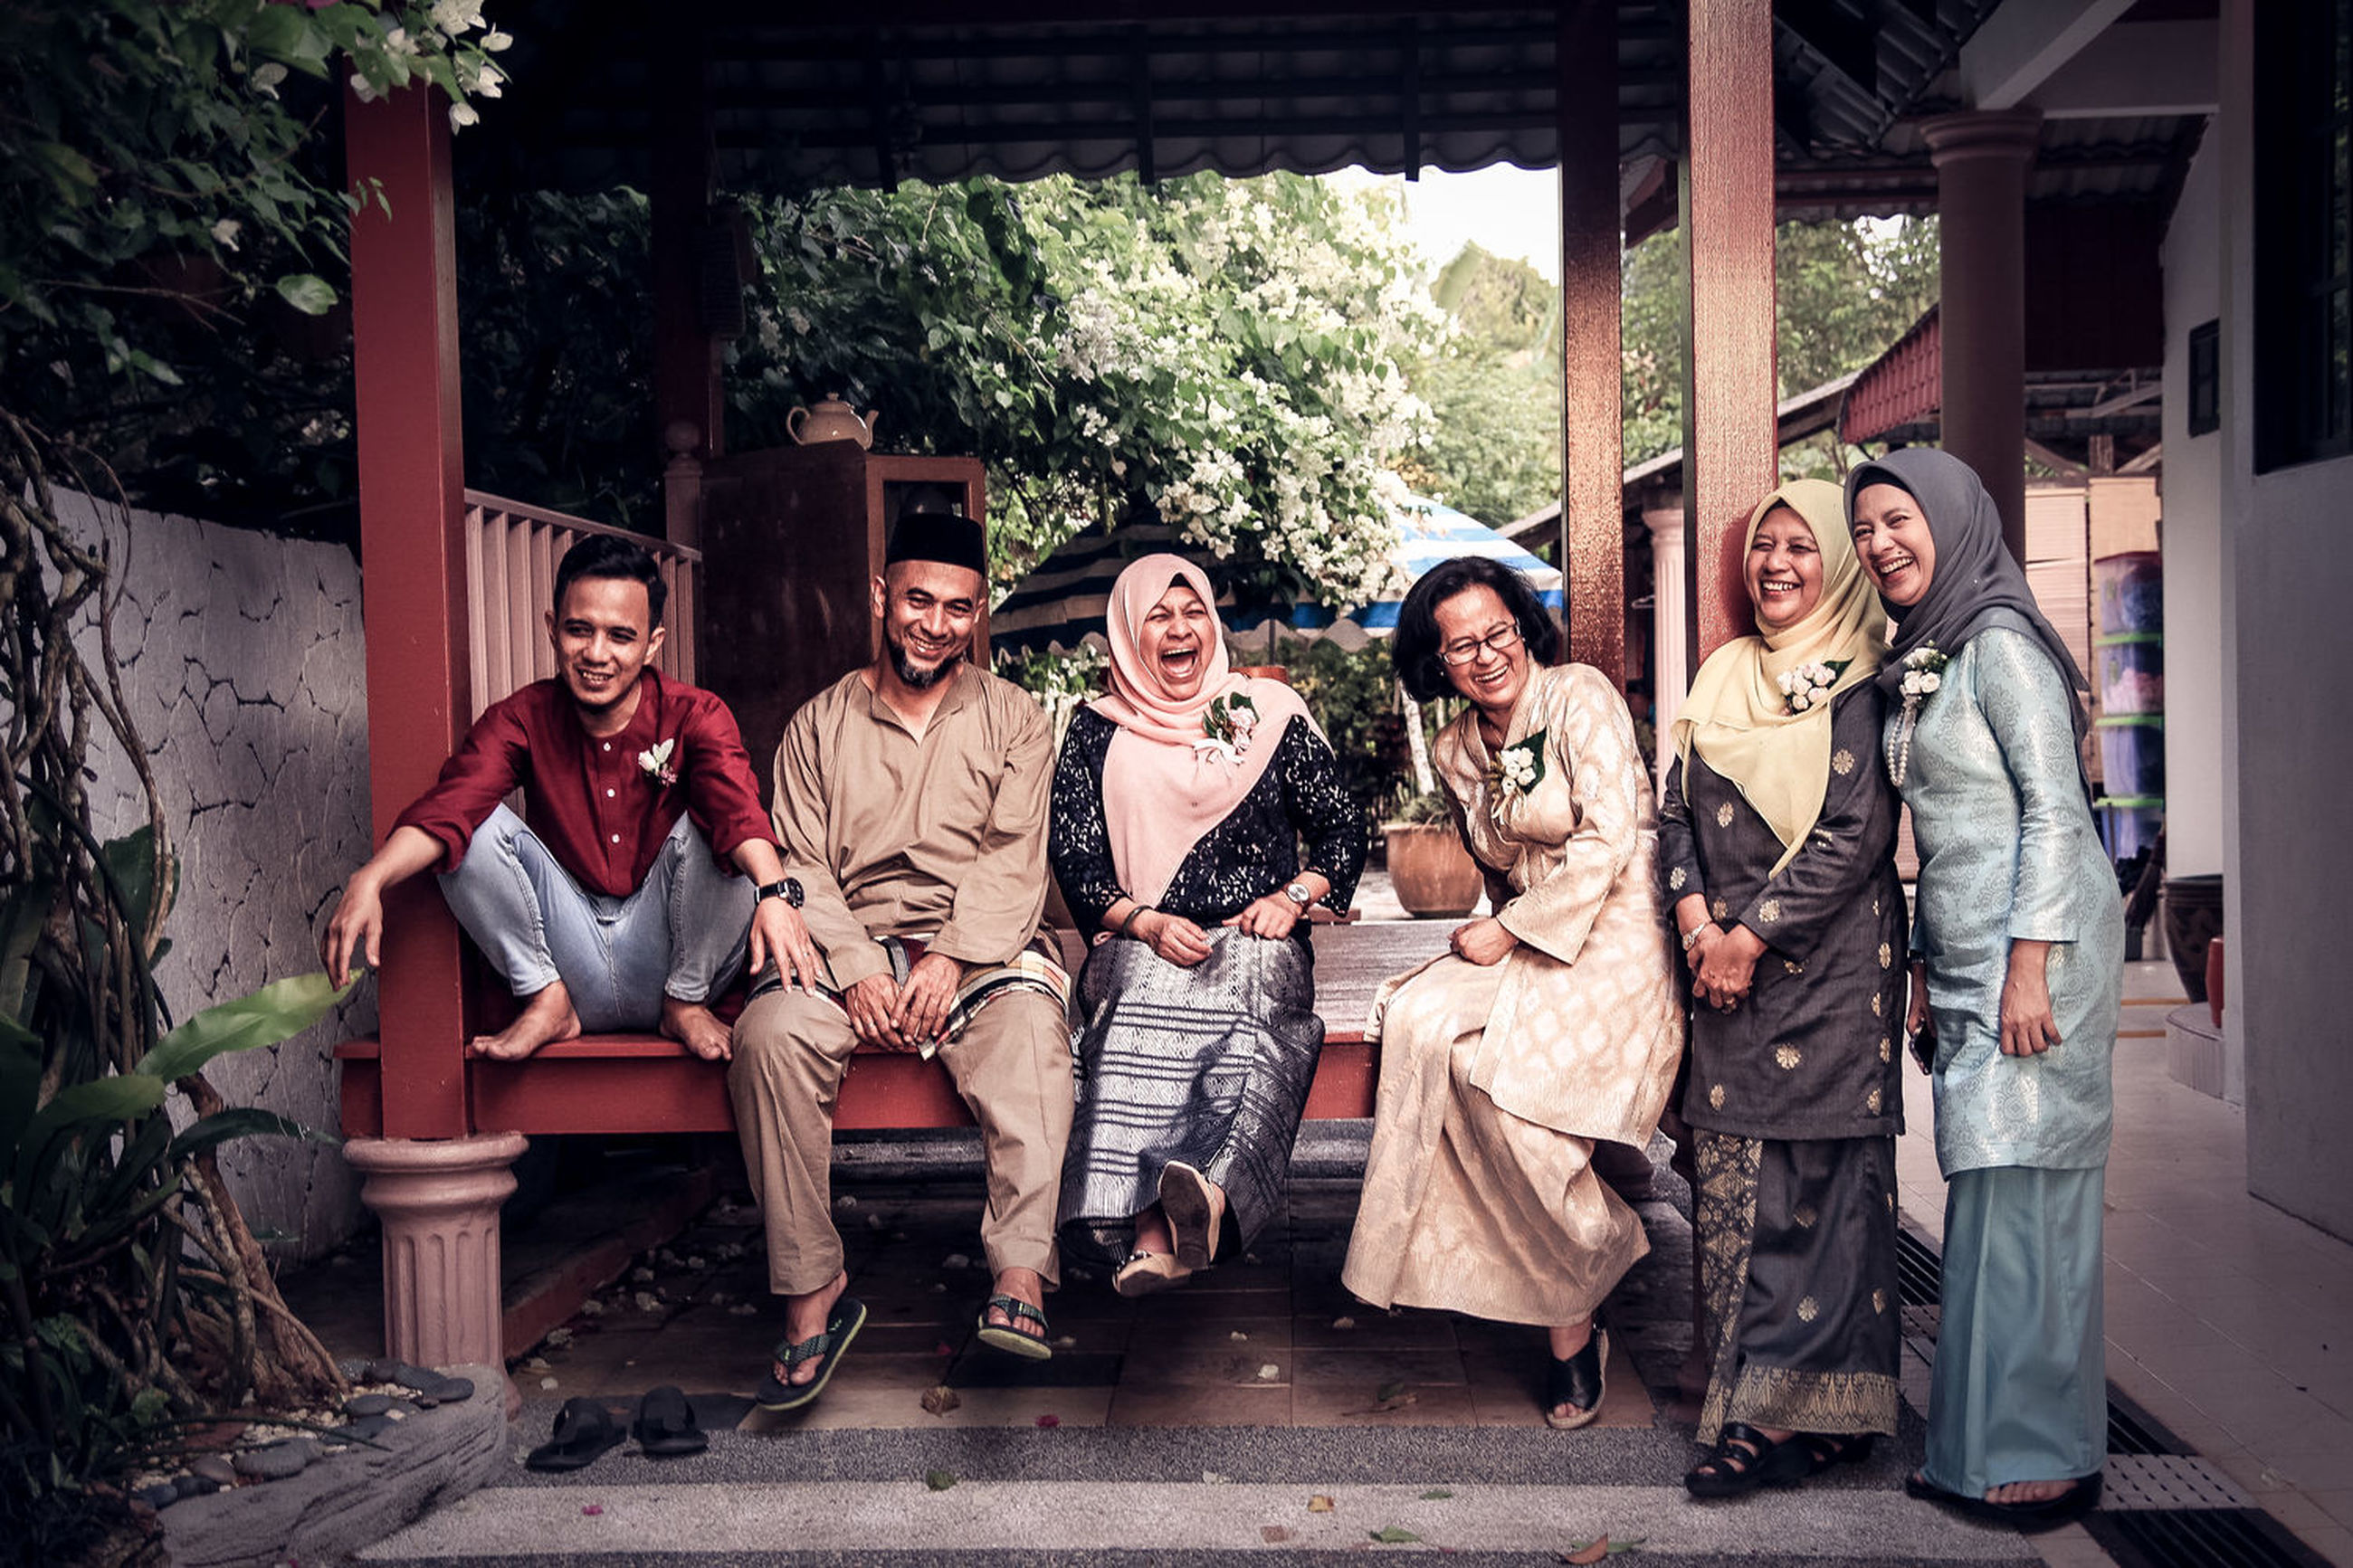 smiling, full length, happiness, group of people, emotion, portrait, togetherness, sitting, men, adult, looking at camera, young adult, front view, real people, young women, women, casual clothing, young men, architecture, people, outdoors, mature men